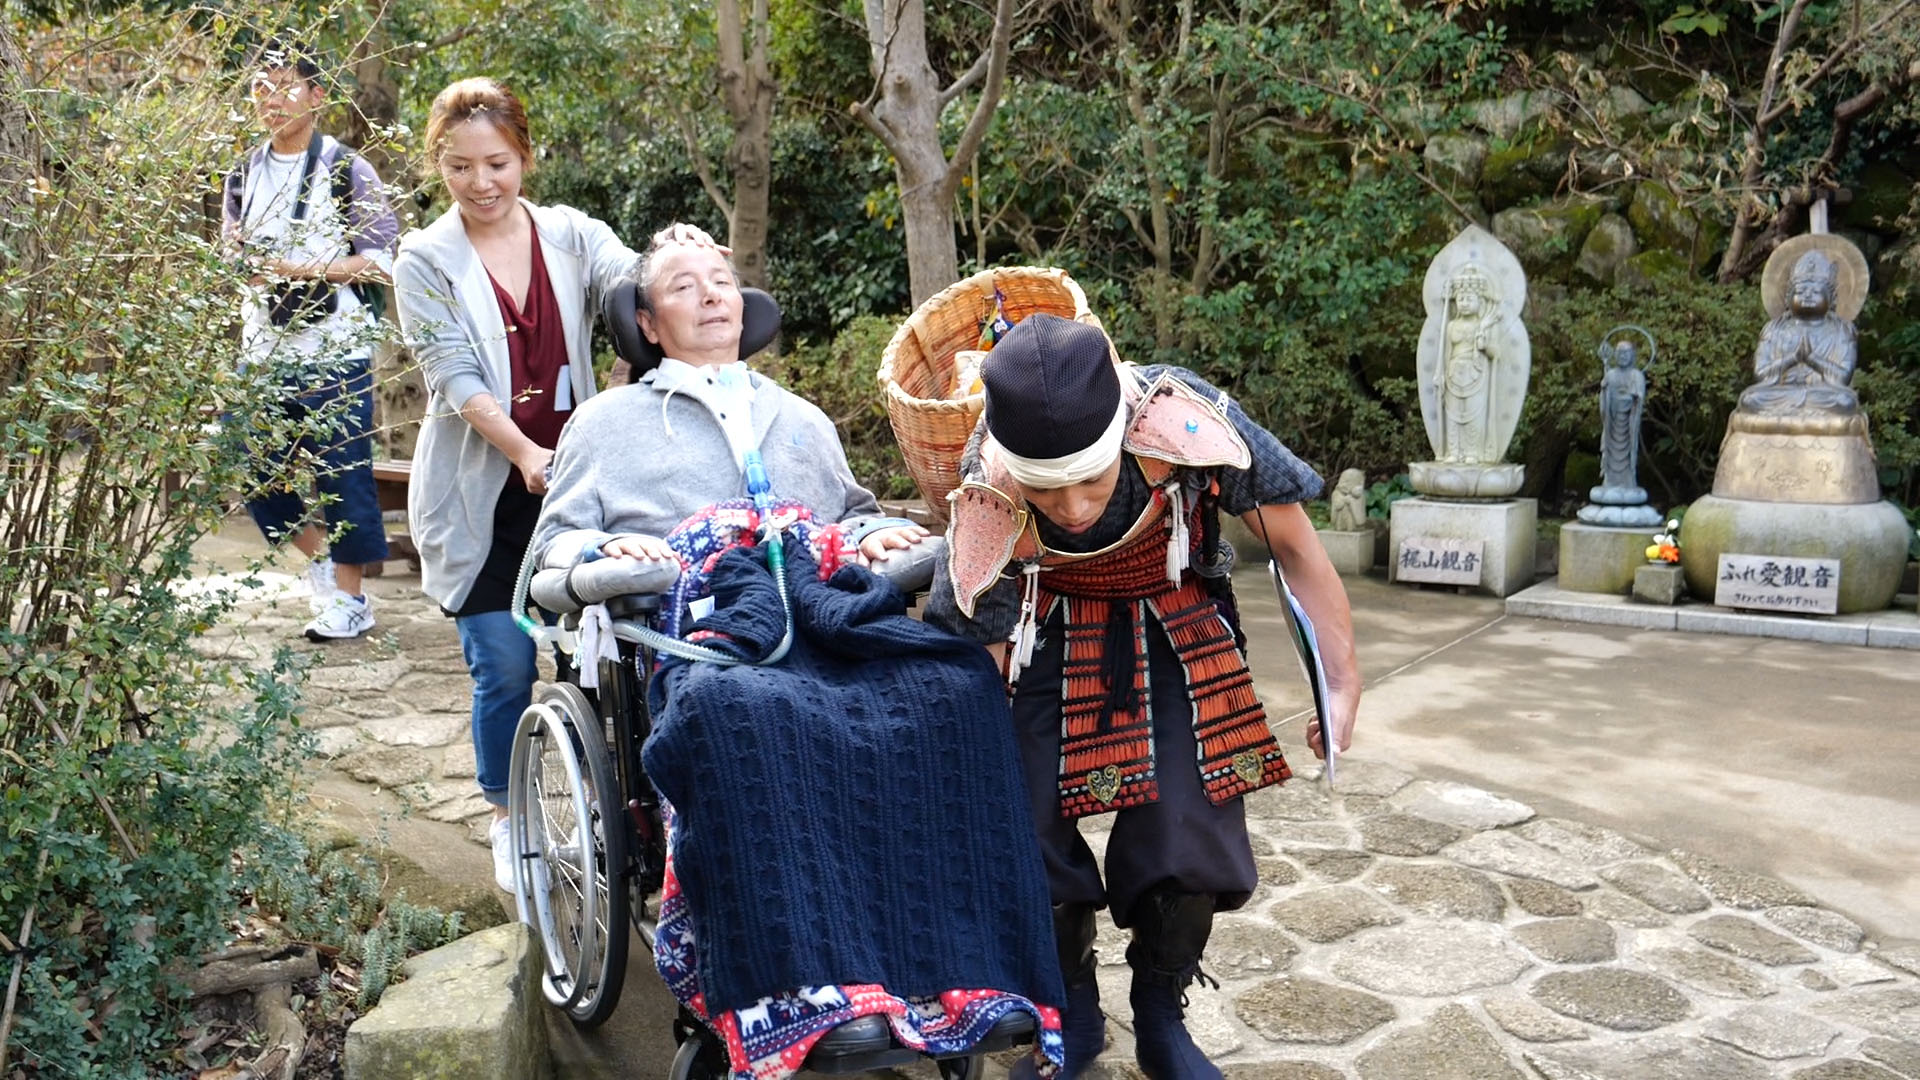 Tomoya Takano (right), the creator of a tour for people with disabilities, helps Hiroshi Matsuyama, who has ALS, navigate a bumpy path at Hase Temple in Kamakura, Kanagawa Prefecture, on Oct. 14.